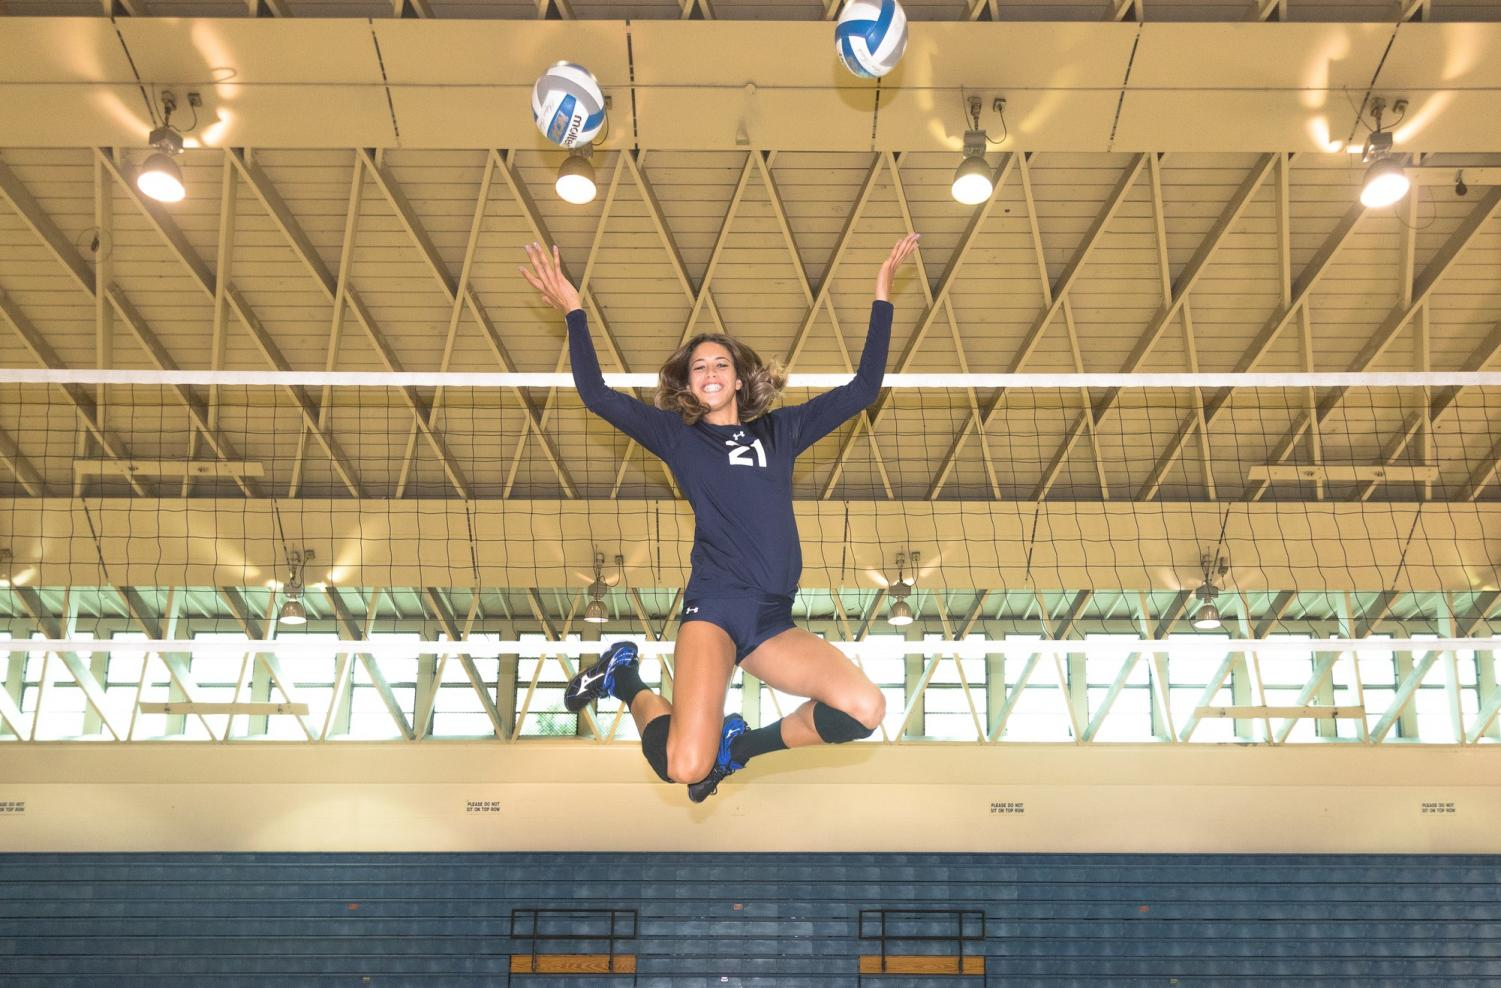 El Camino volleyball player becomes a leader